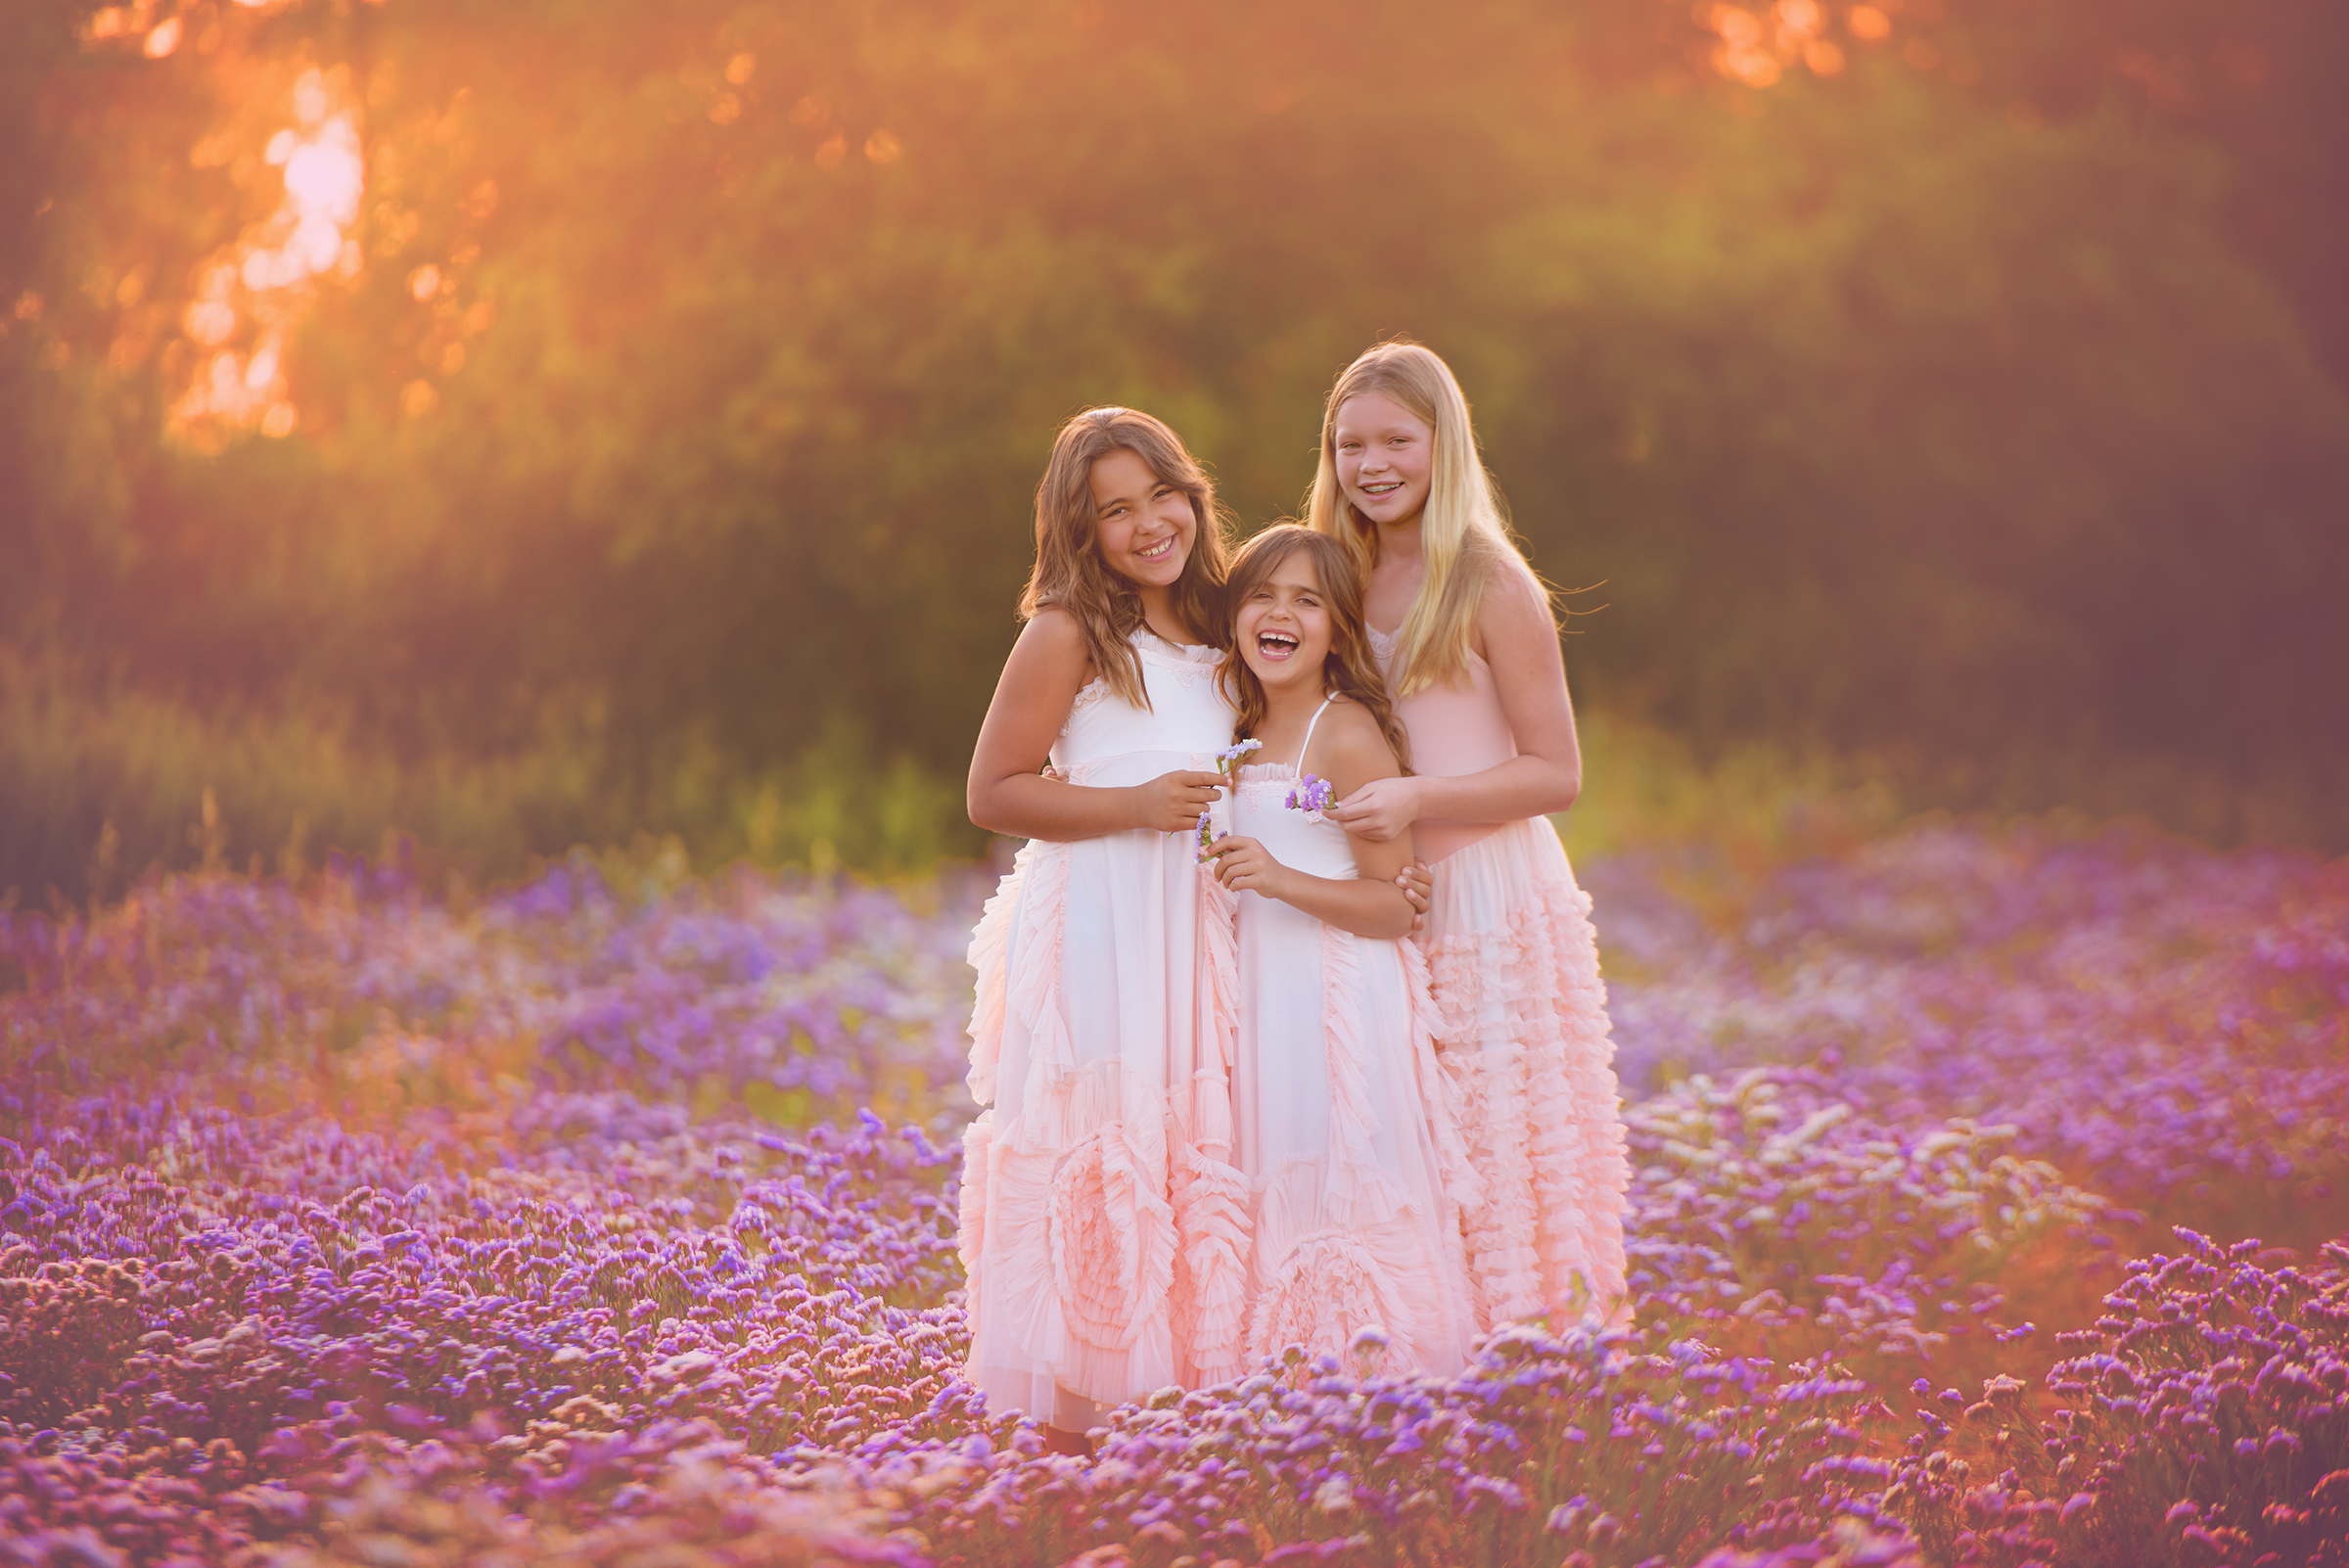 Tween and little girl pose in a sunny flower field of purple wildflowers in photography location in San Diego, CA